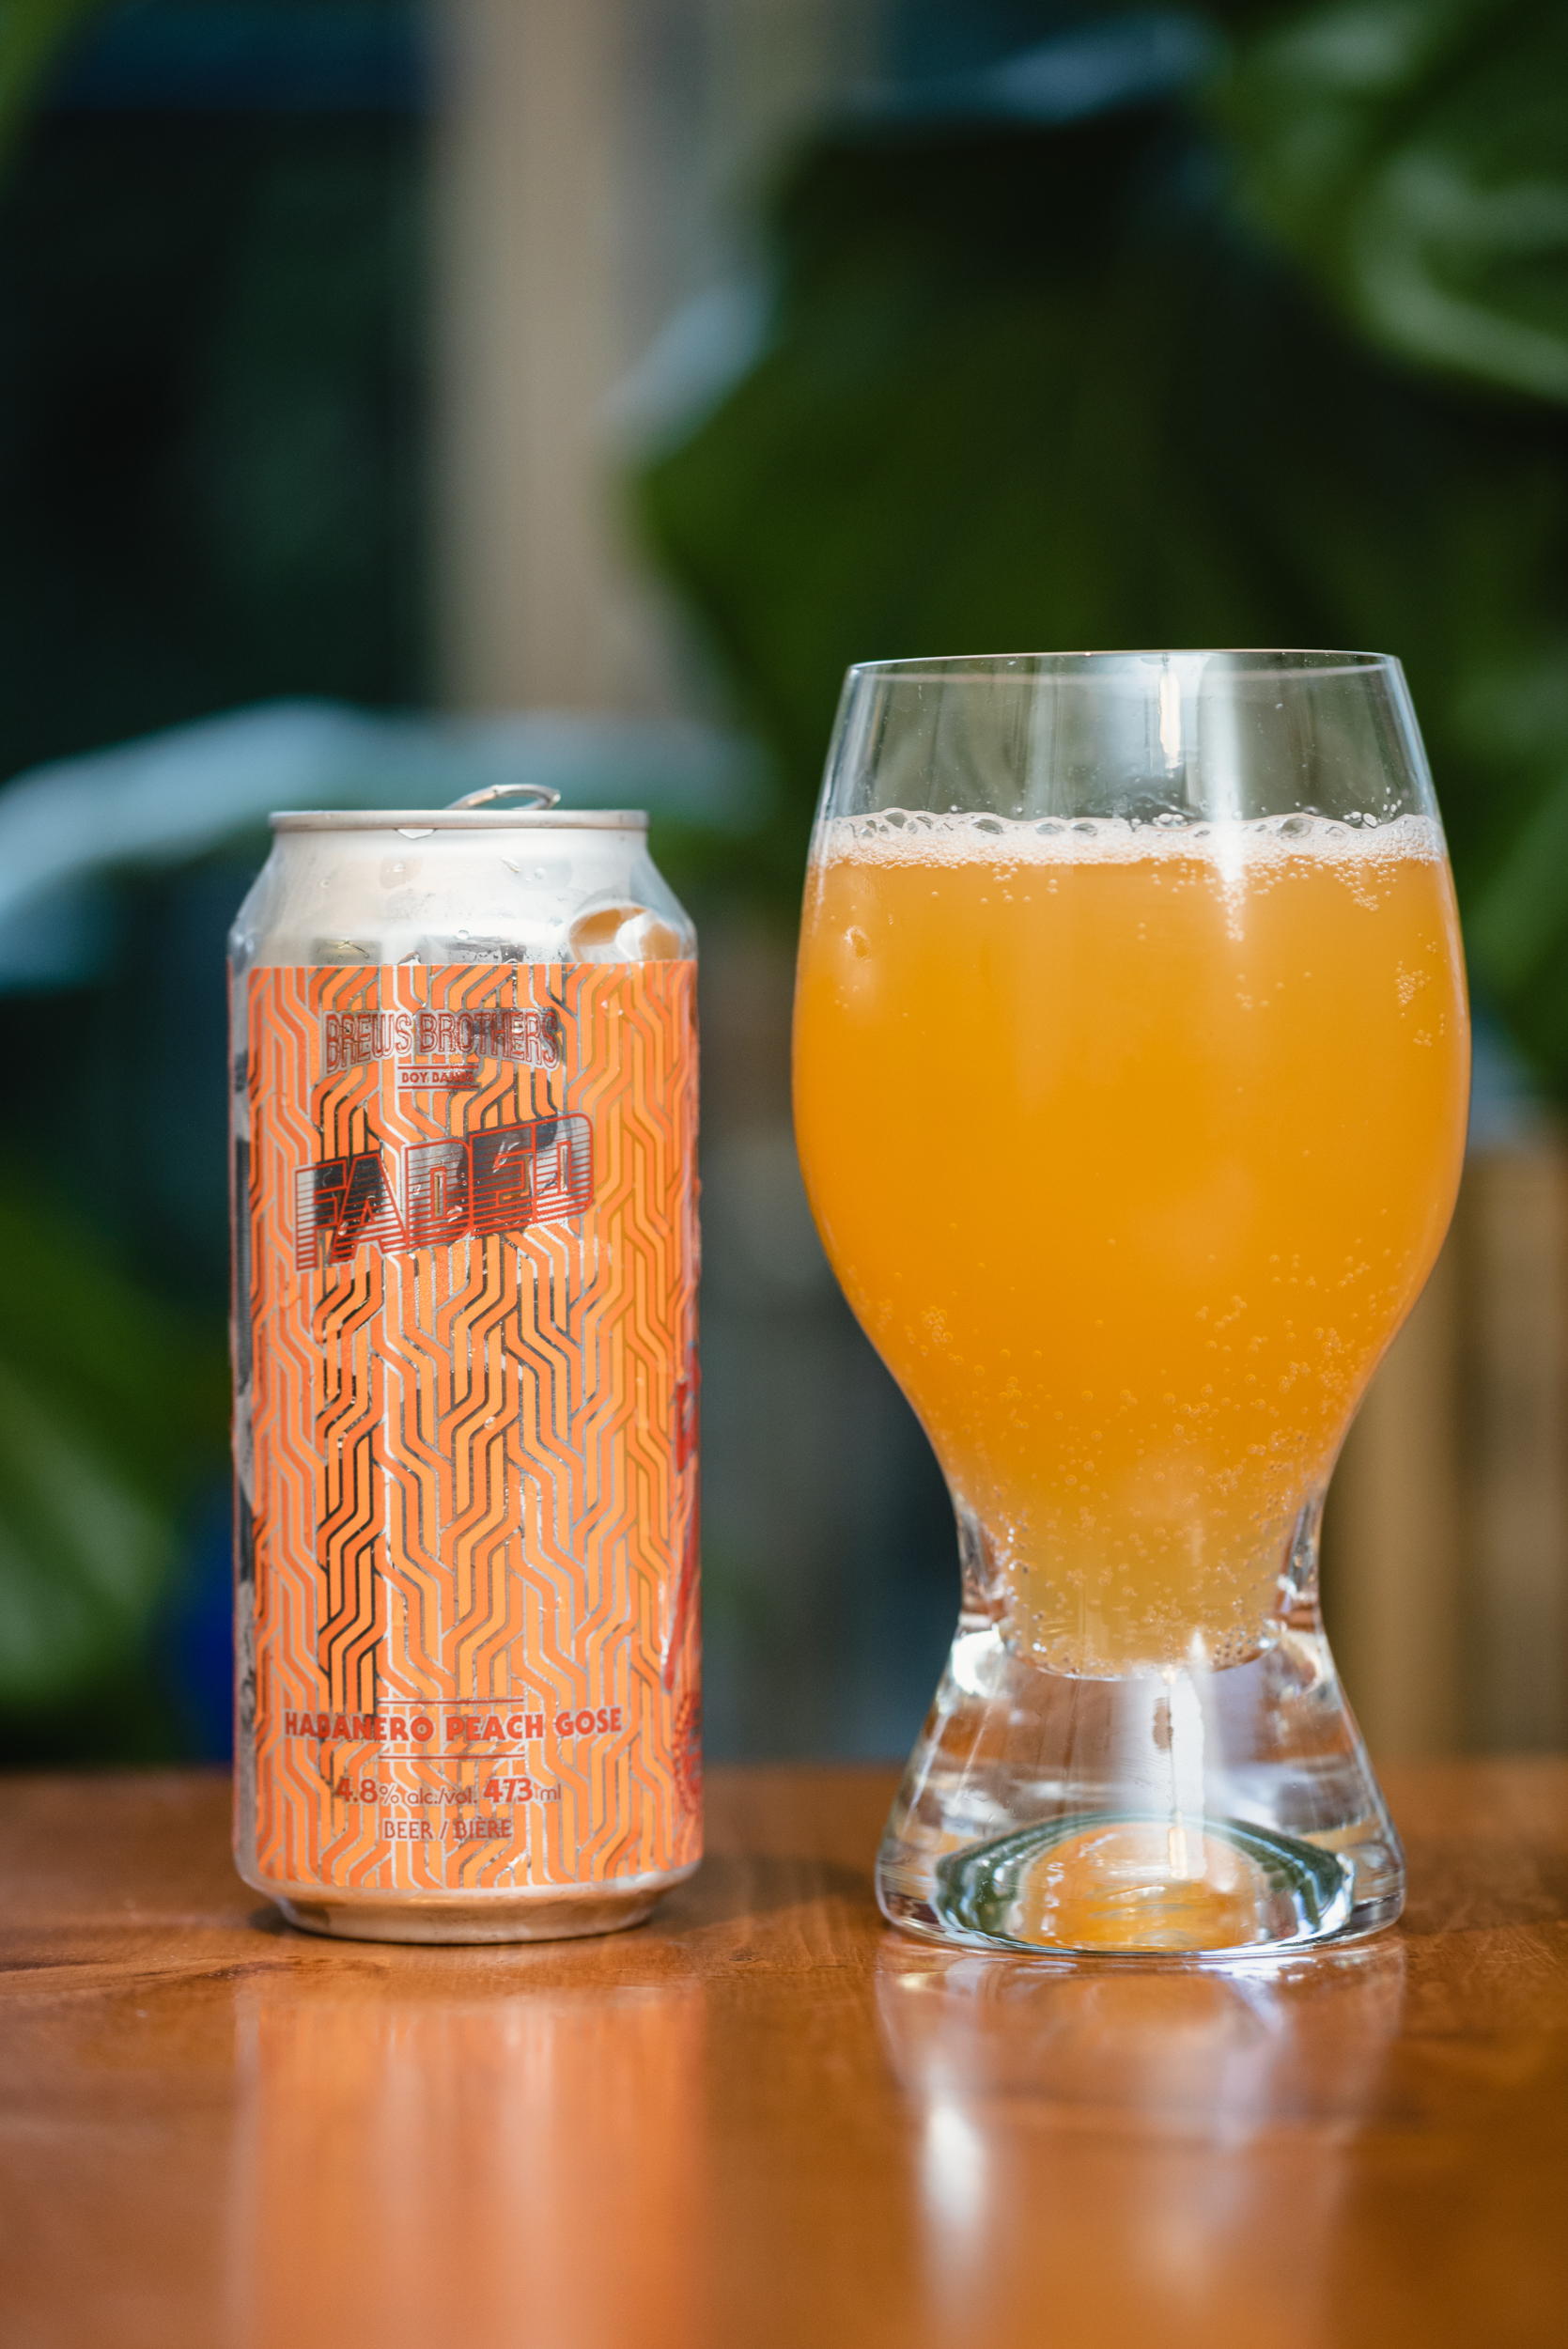 Parallel 49 Brewing Faded habanero peach gose in glass